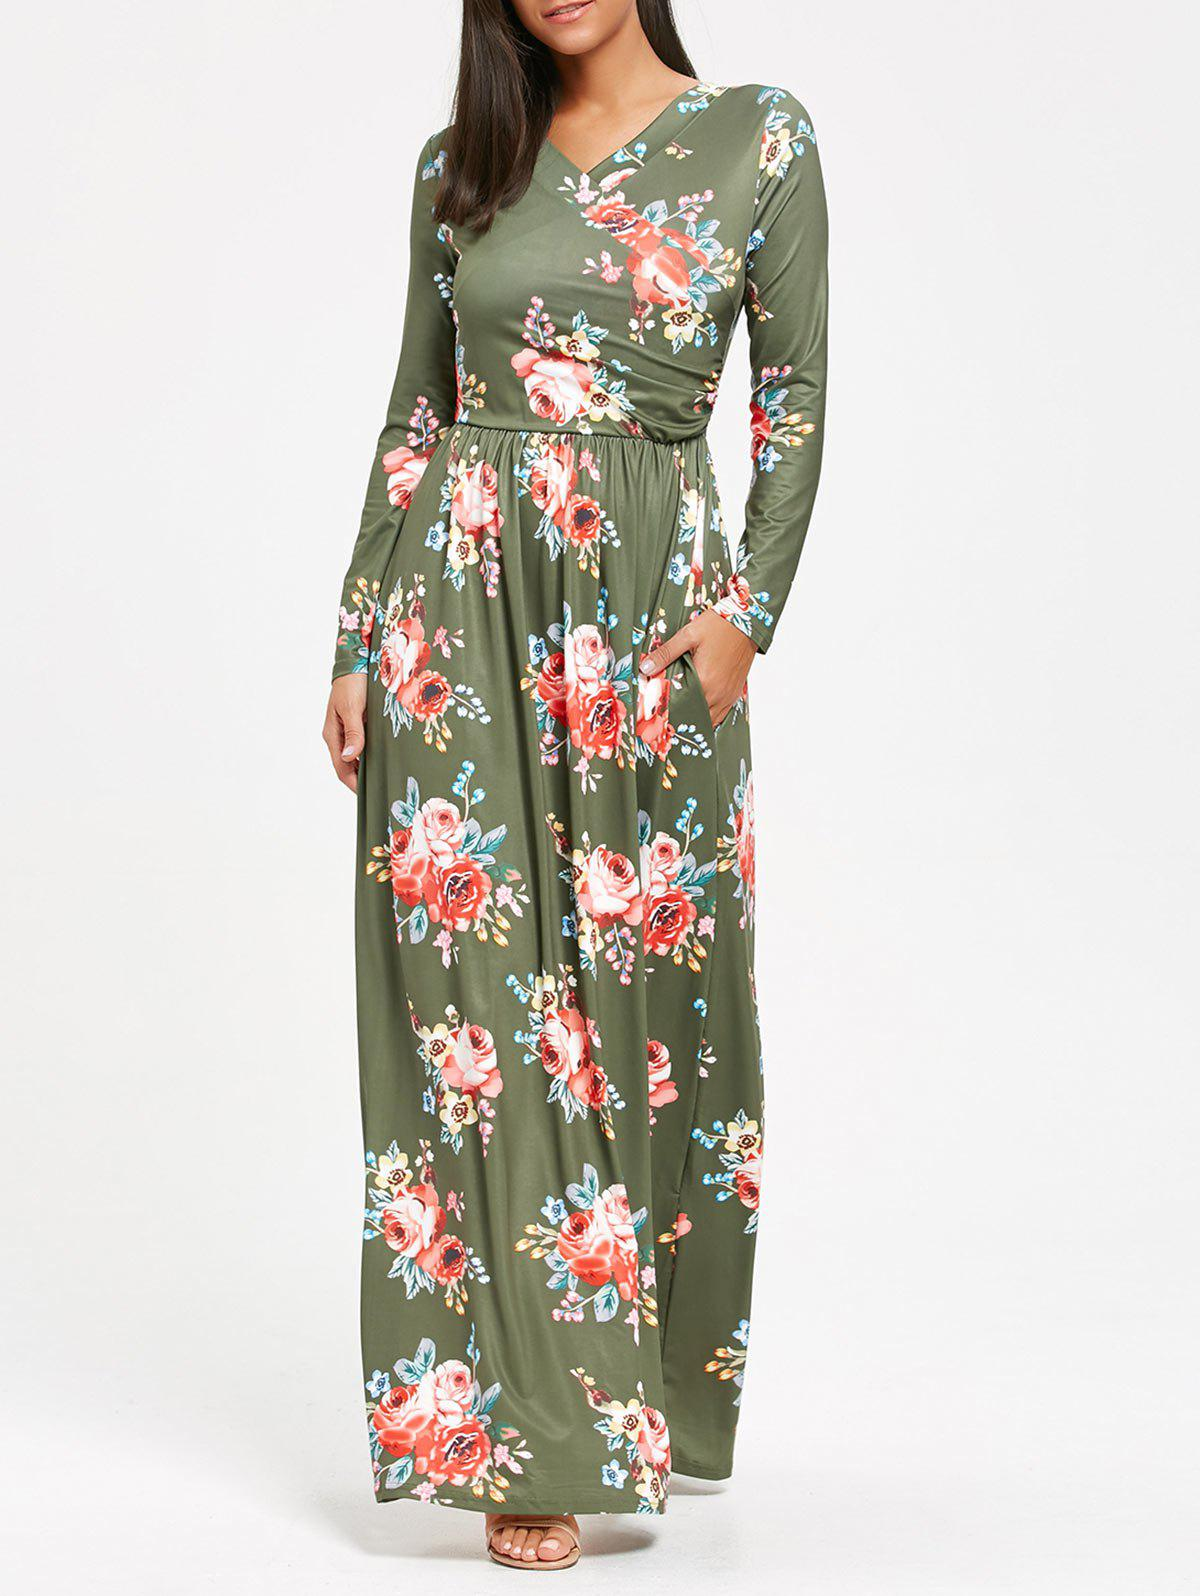 e89360847f 2019 High Waist Floral Print Long Sleeve Maxi Dress